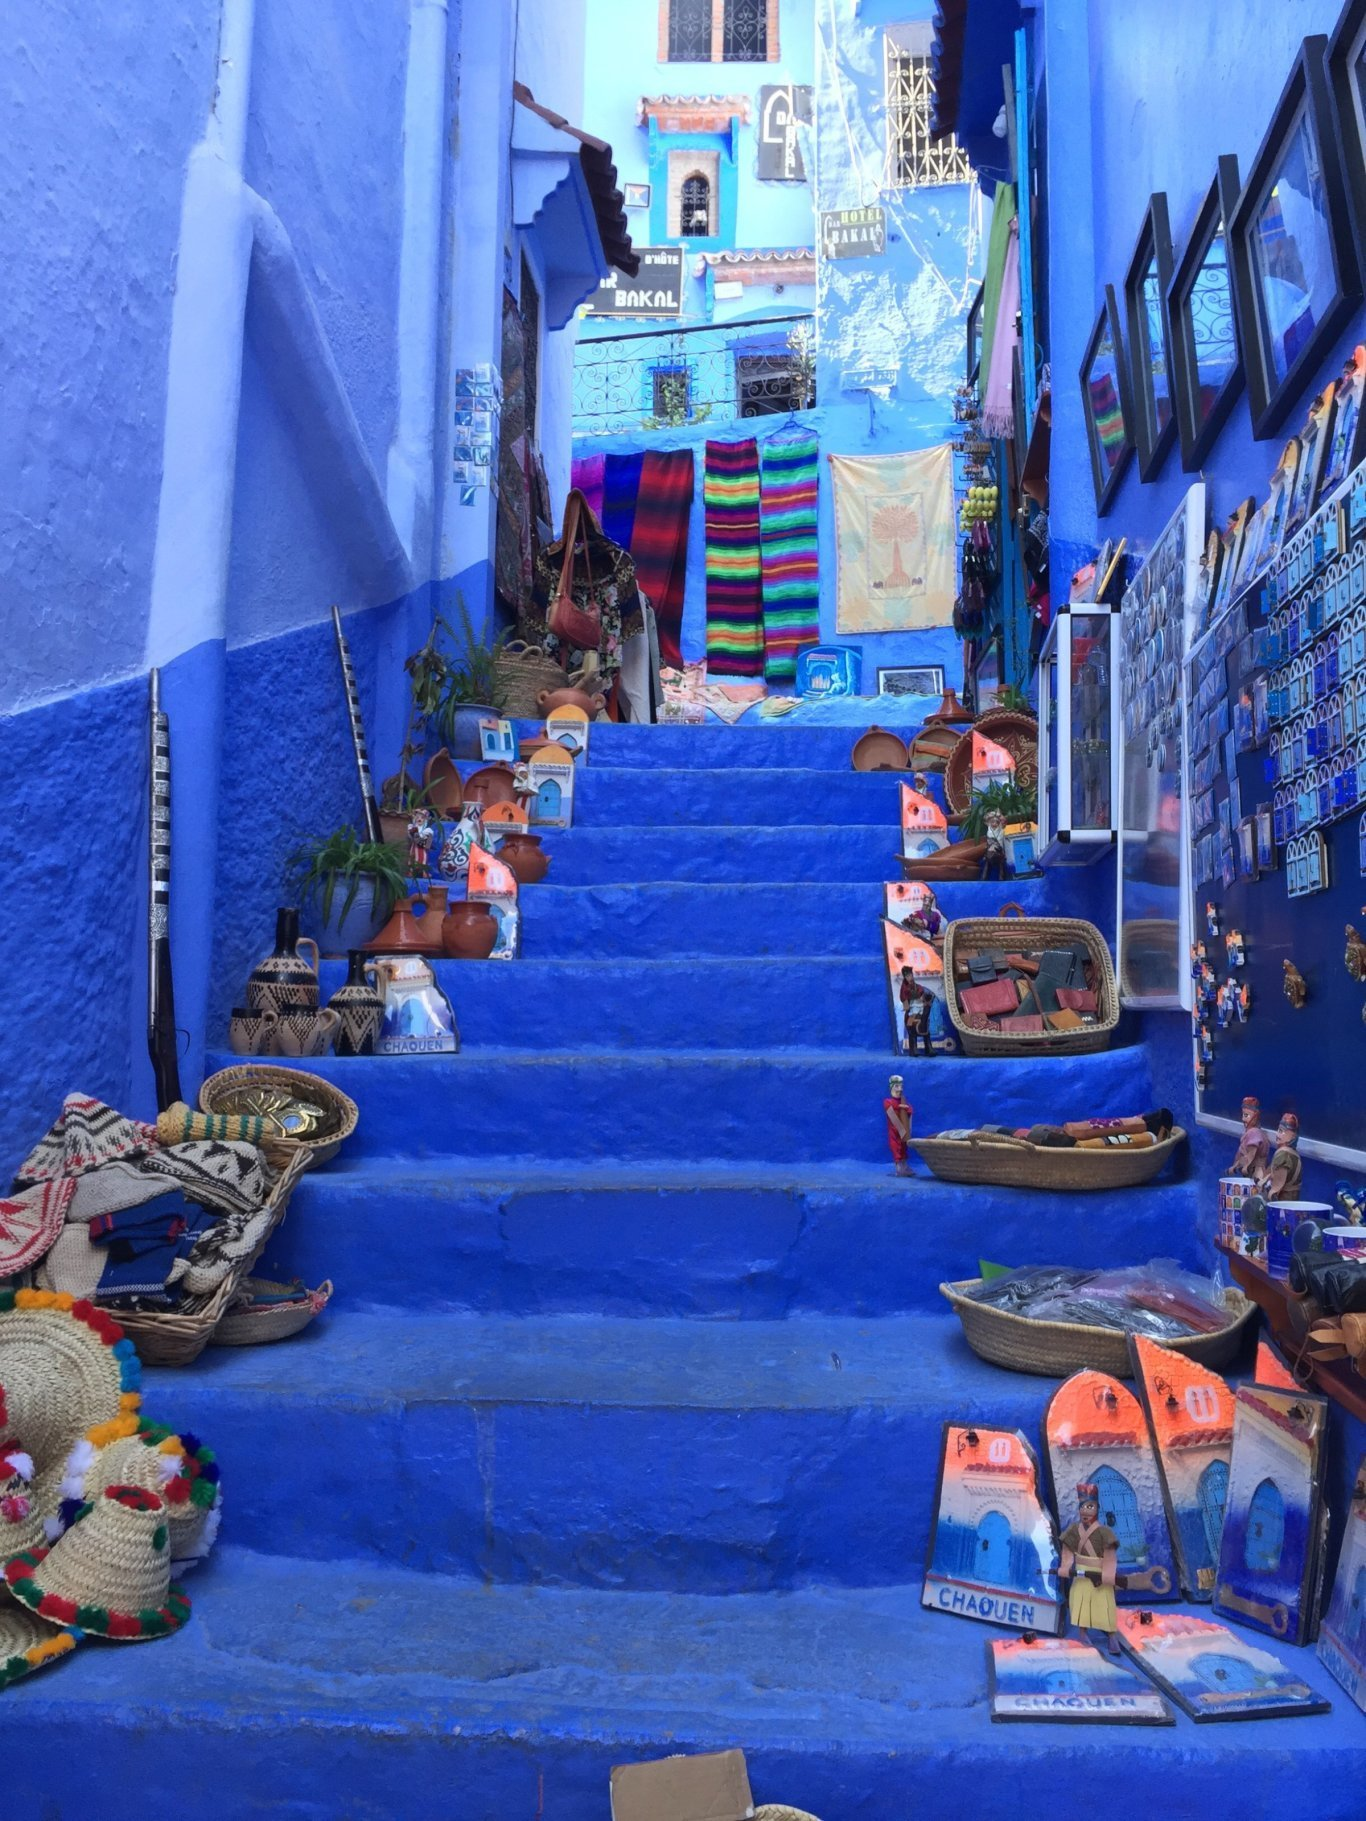 3-Day Rif Mountains & Chefchaouen from Tangier - Morocco Itinerary